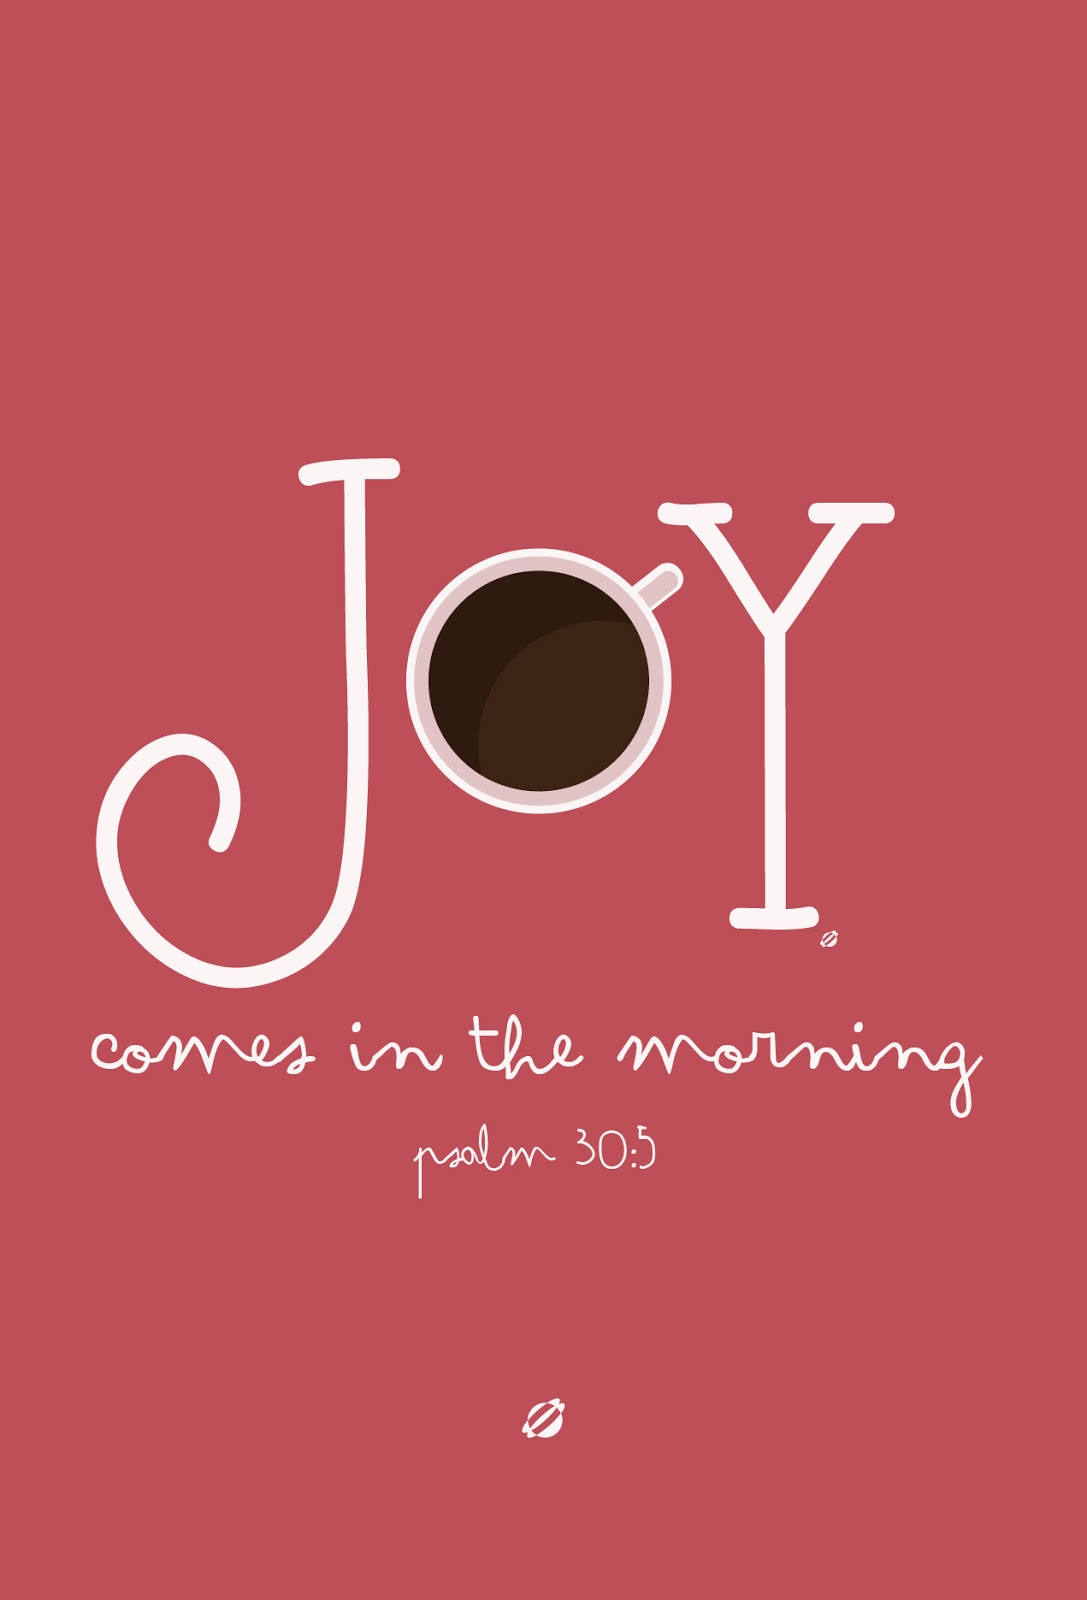 LostBumblebee ©2014 Joy Comes In the Morning! Free Printable- Personal Use Only